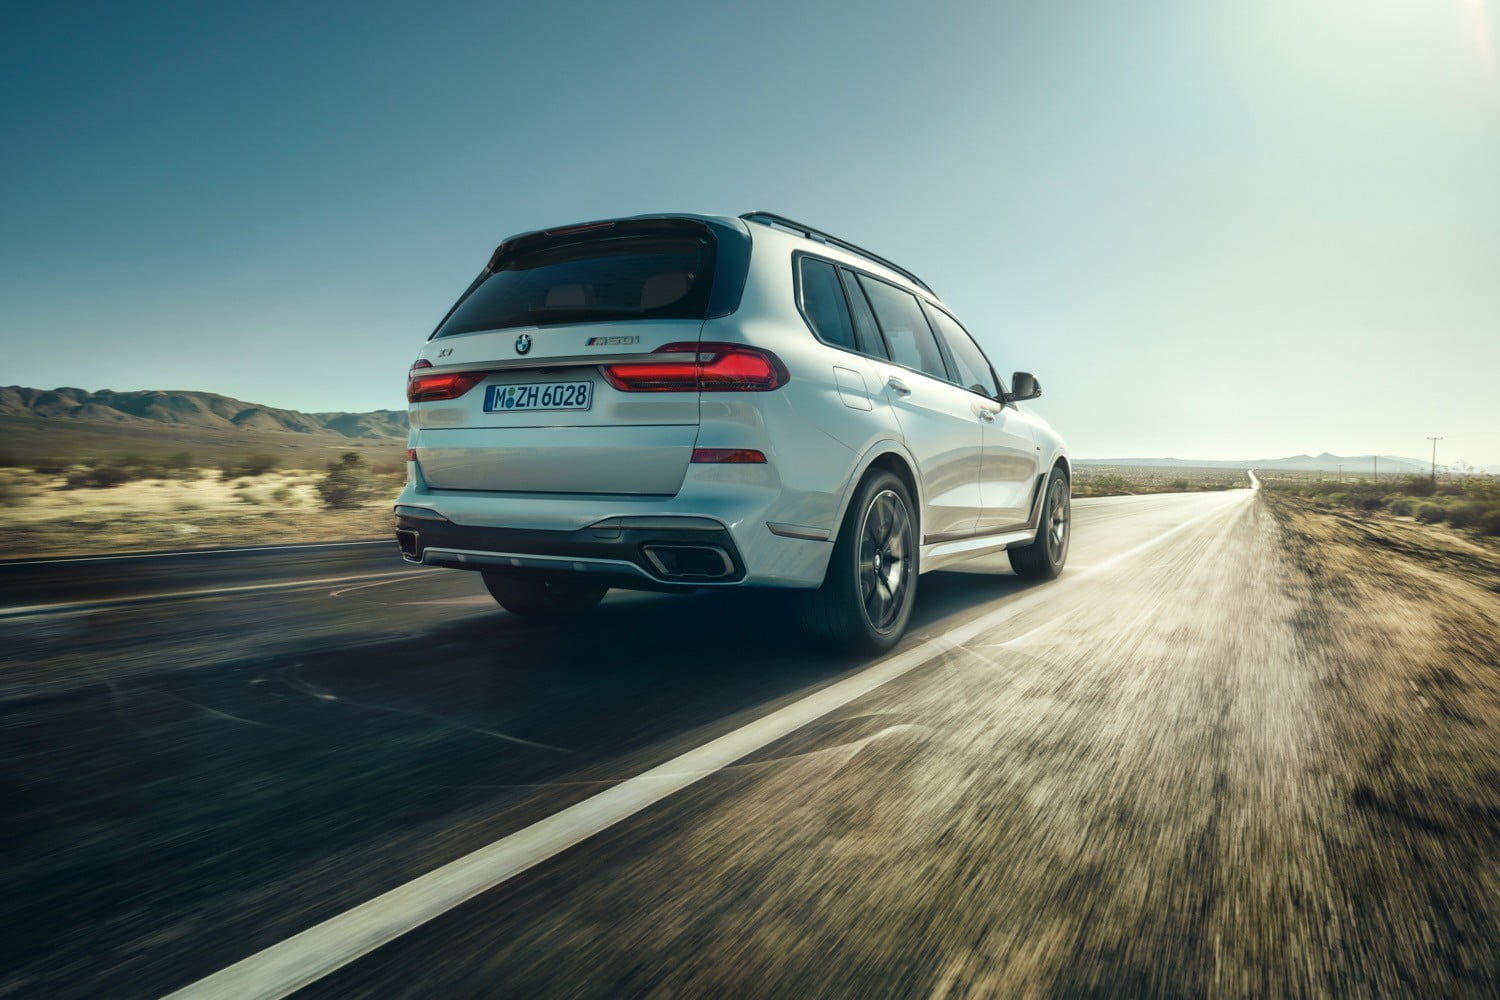 2021 BMW X5 Will Introduce Electric Version >> 2020 Bmw X5 M50i And X7 M50i Get 523 Horsepower Twin Turbo V8s